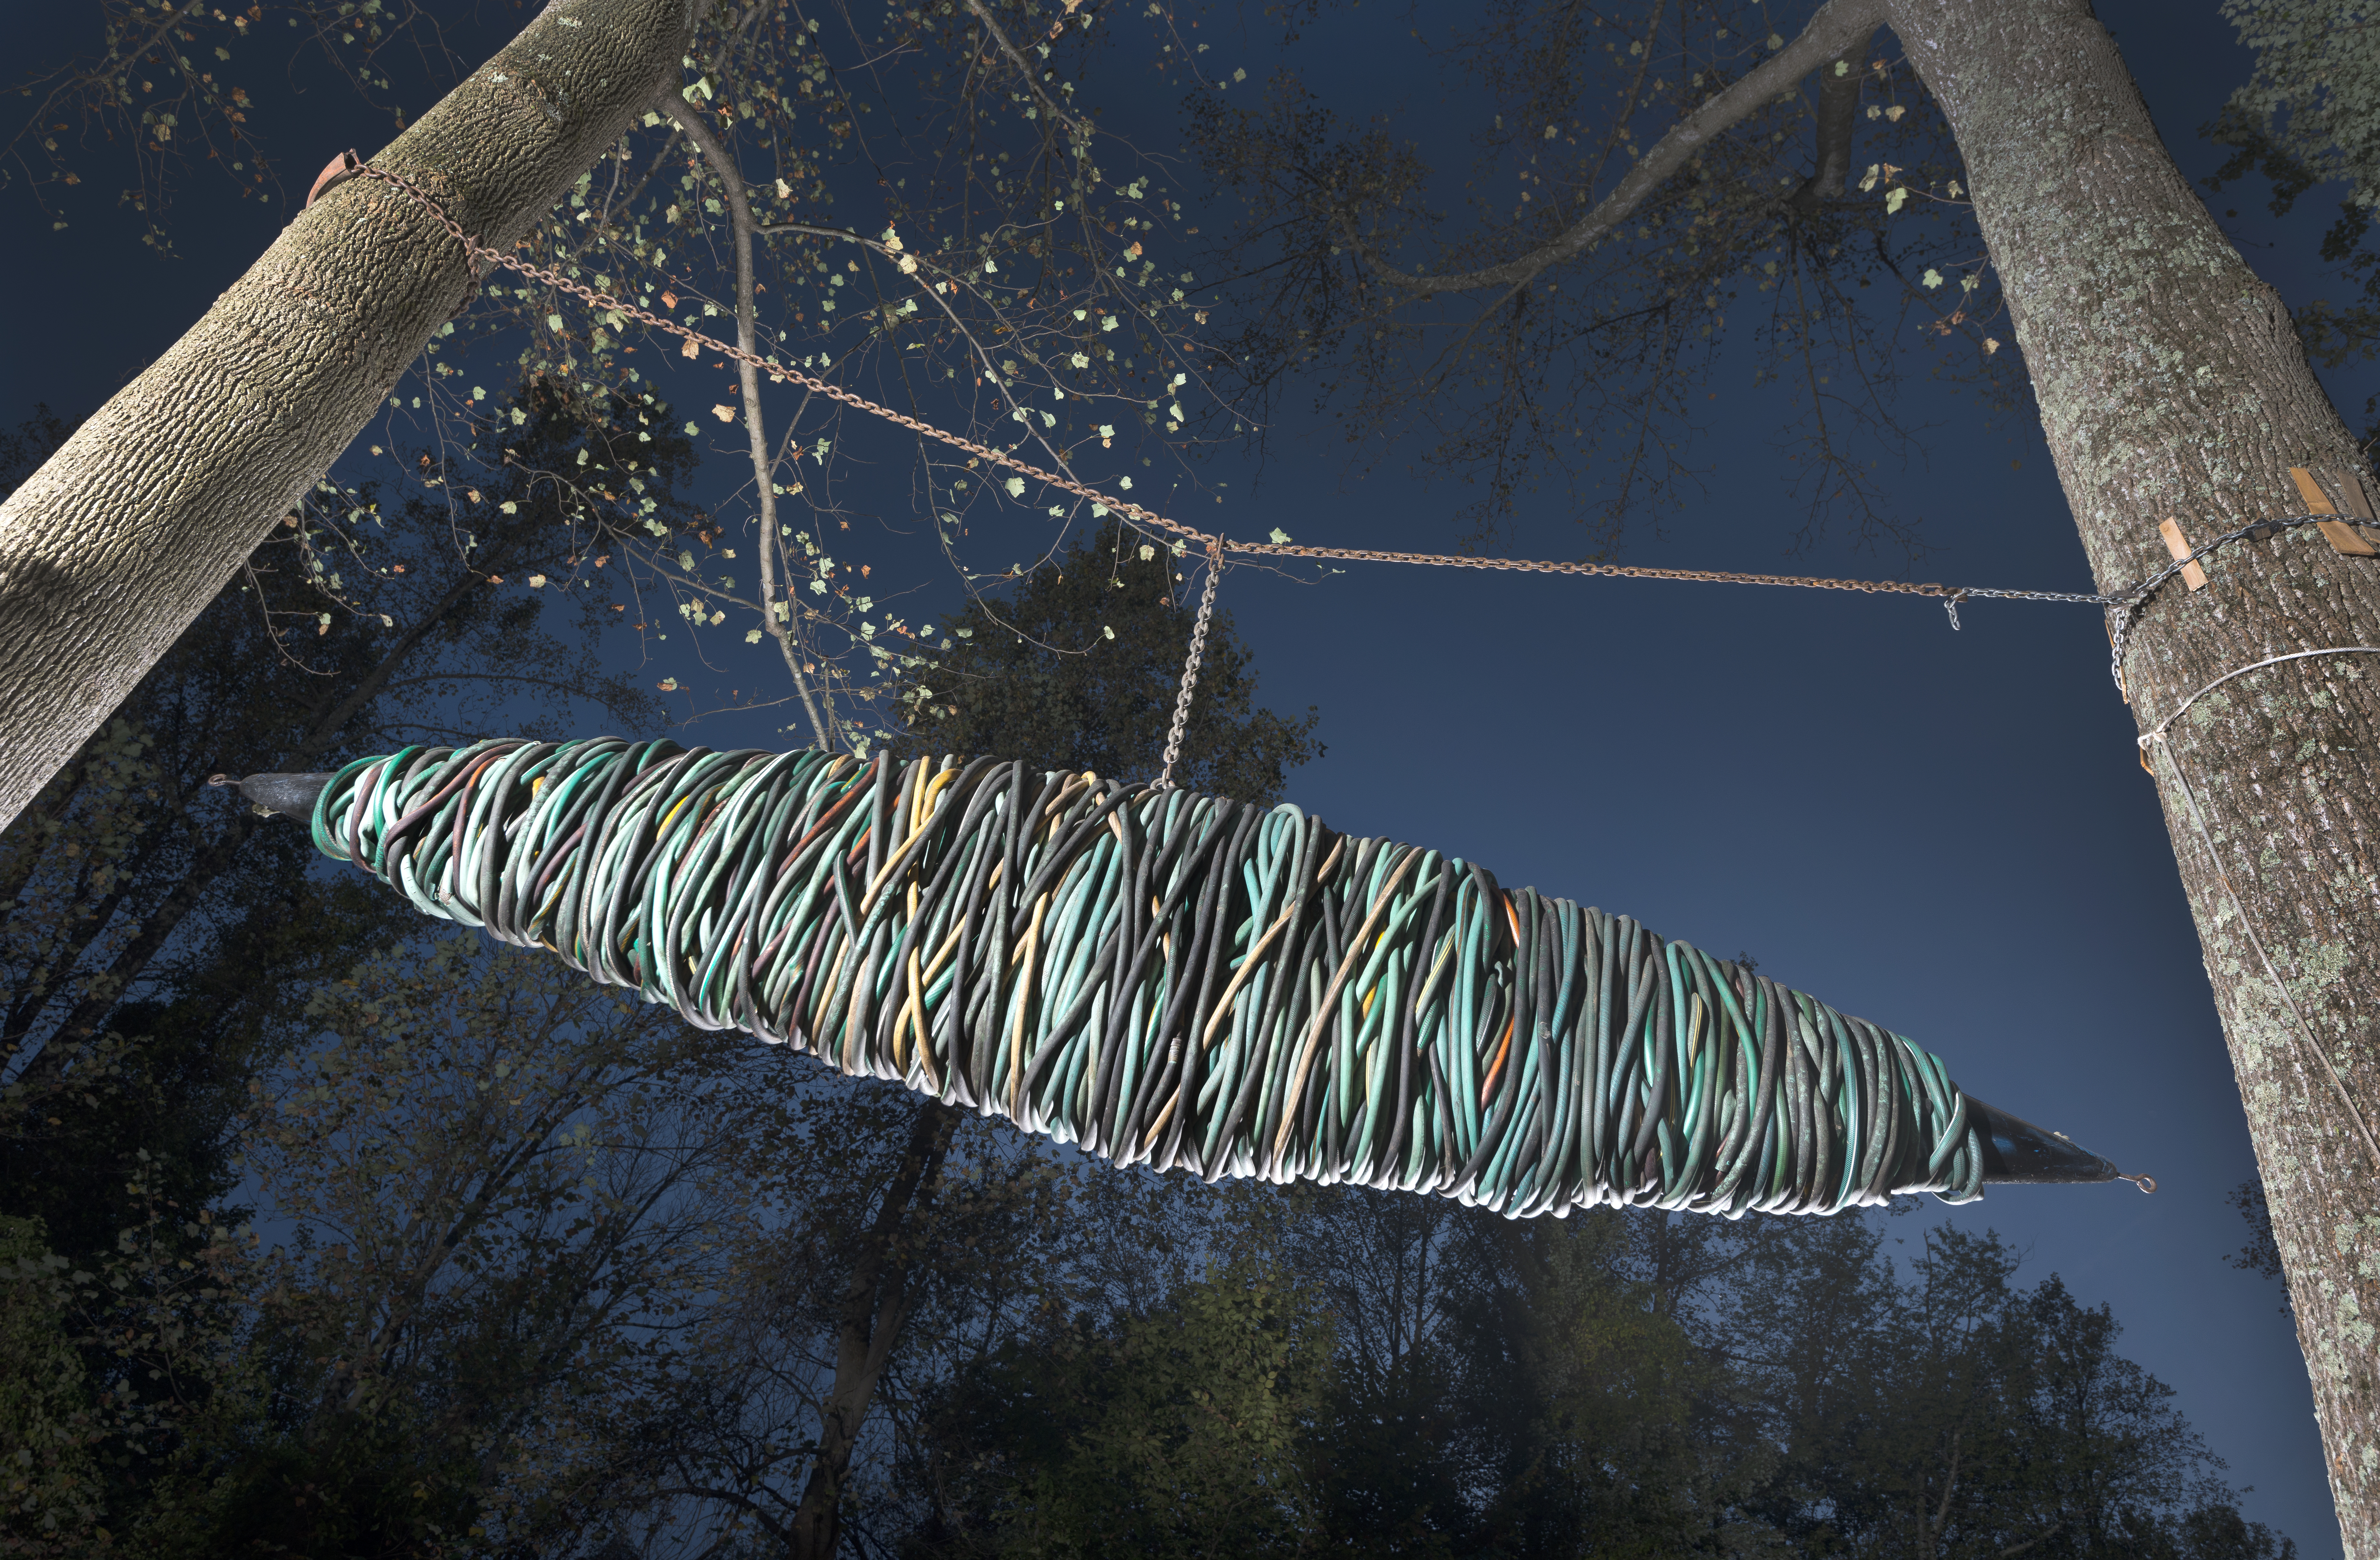 Transformation, water, wars, forest, insects, silk, wrapping, binding, floating